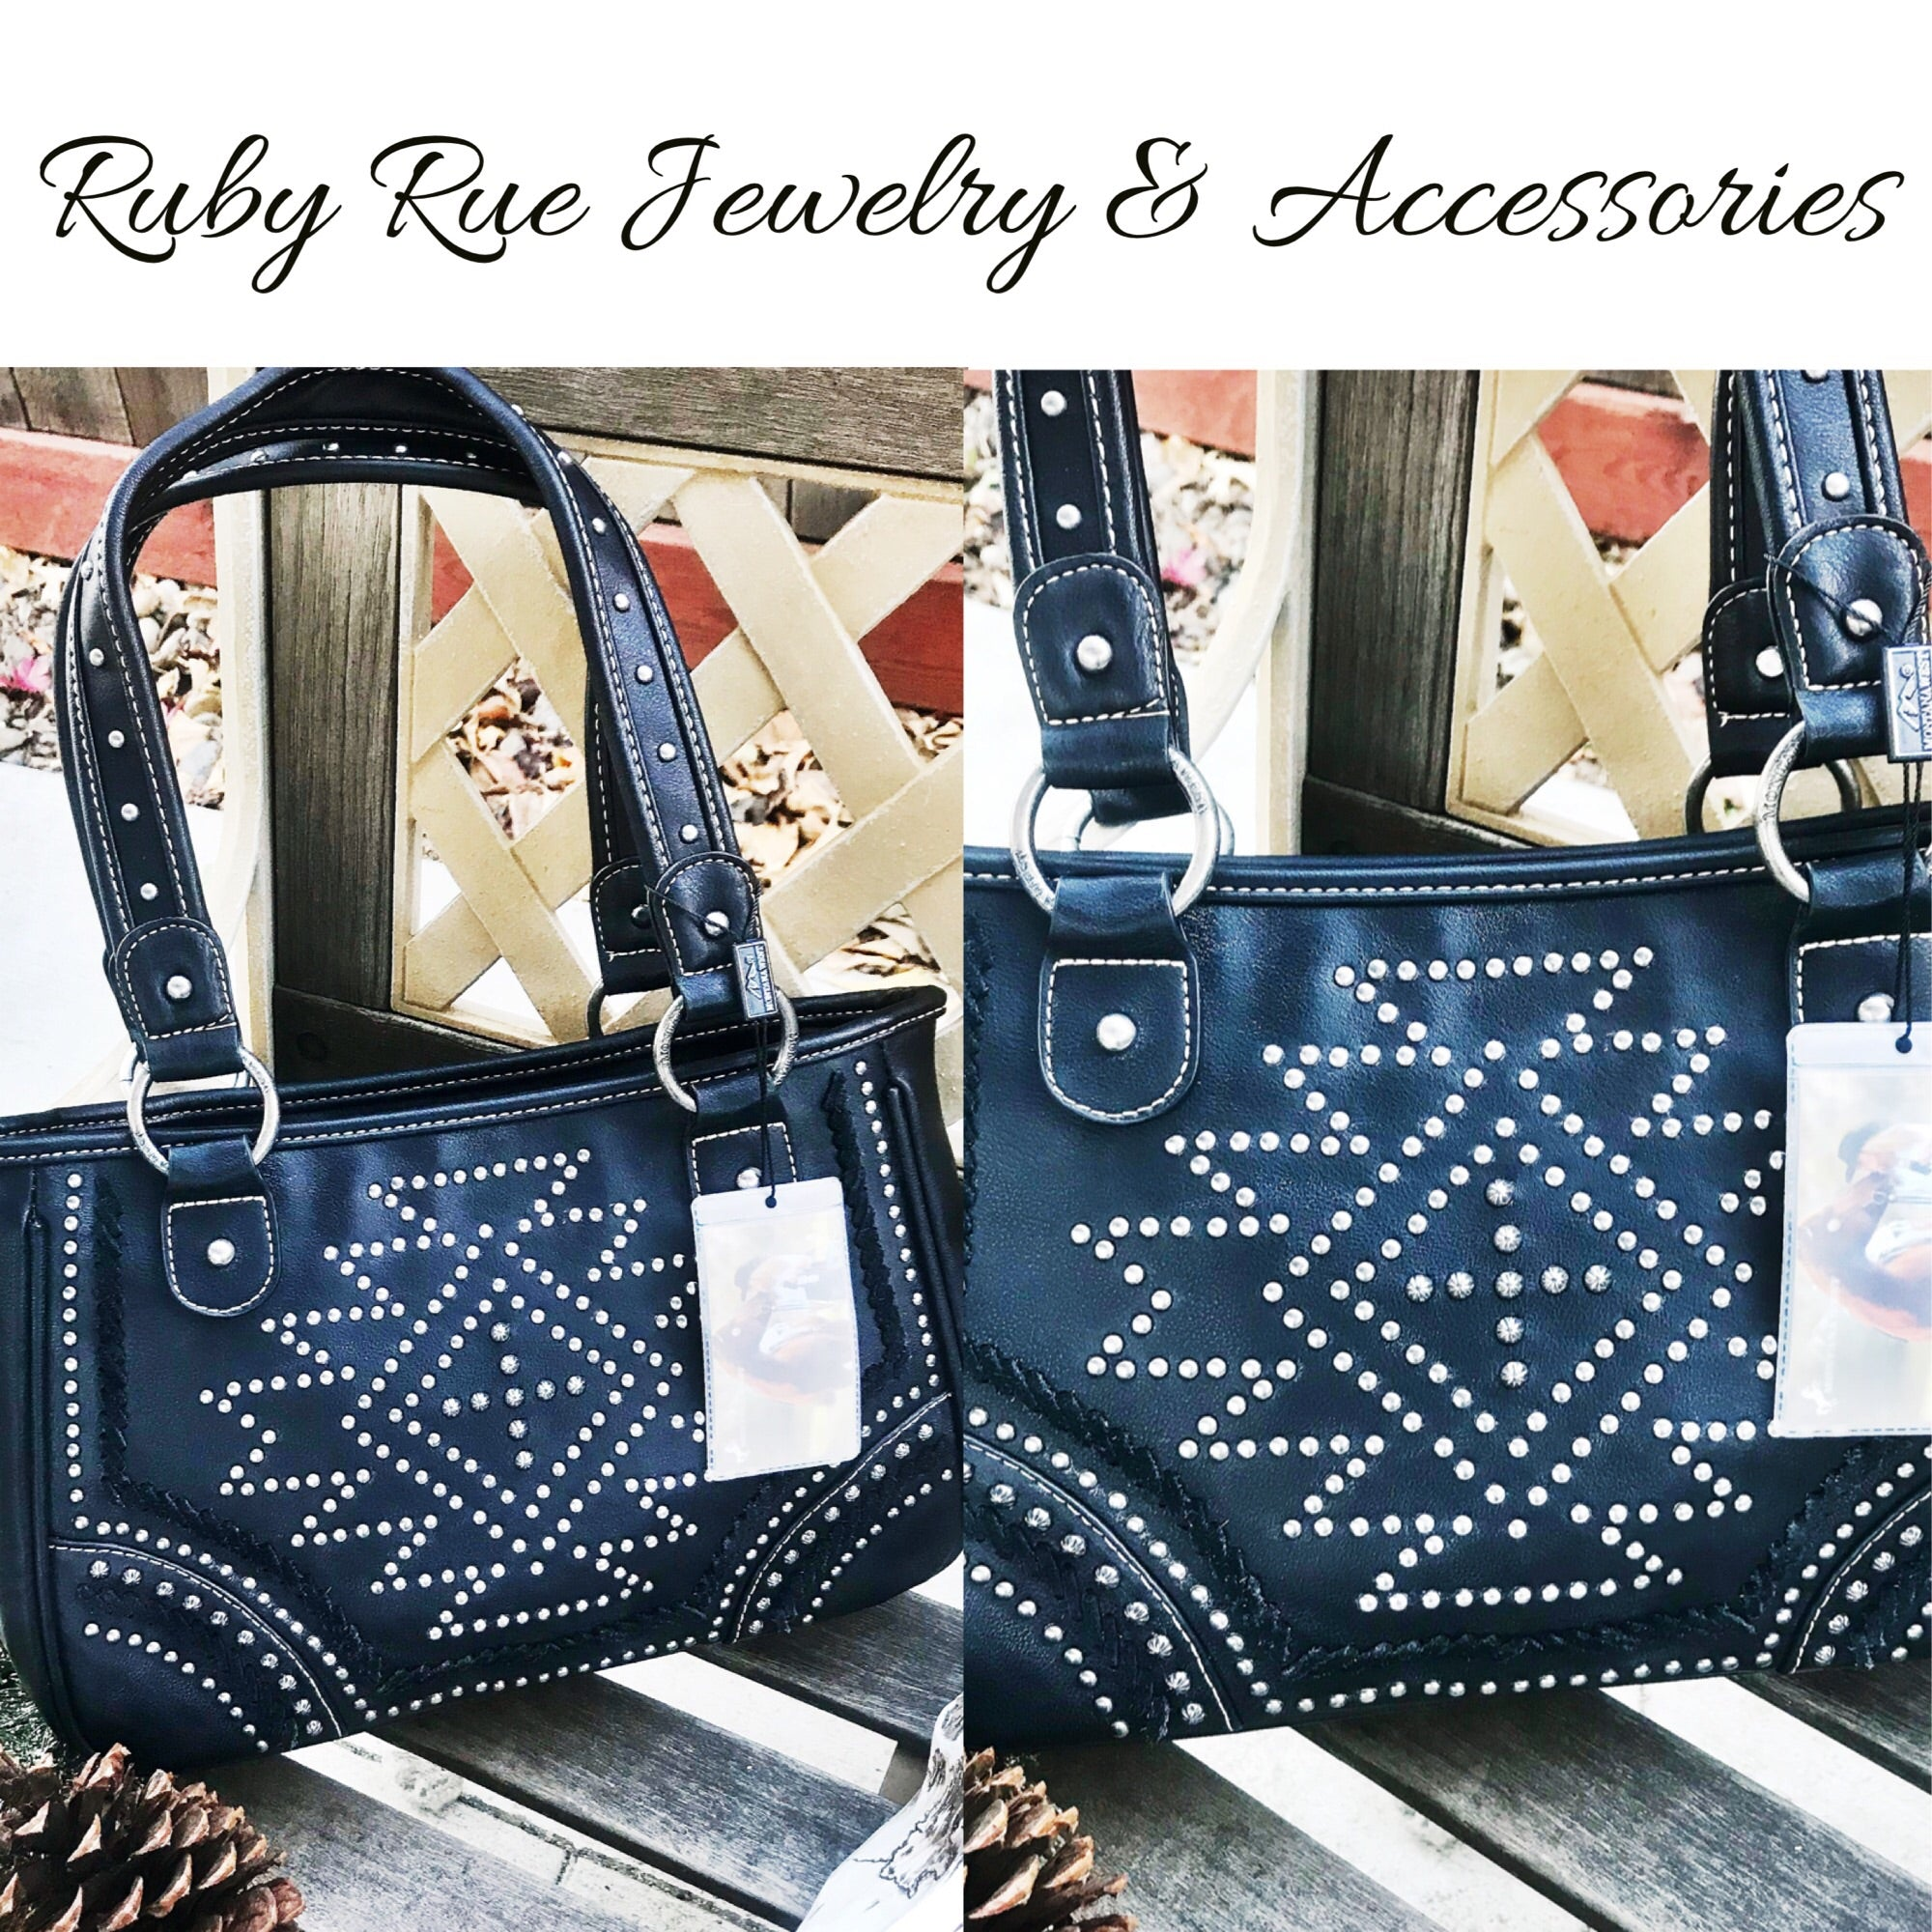 Black Double Handle Leather Handbag - Ruby Rue Jewelry & Accessories